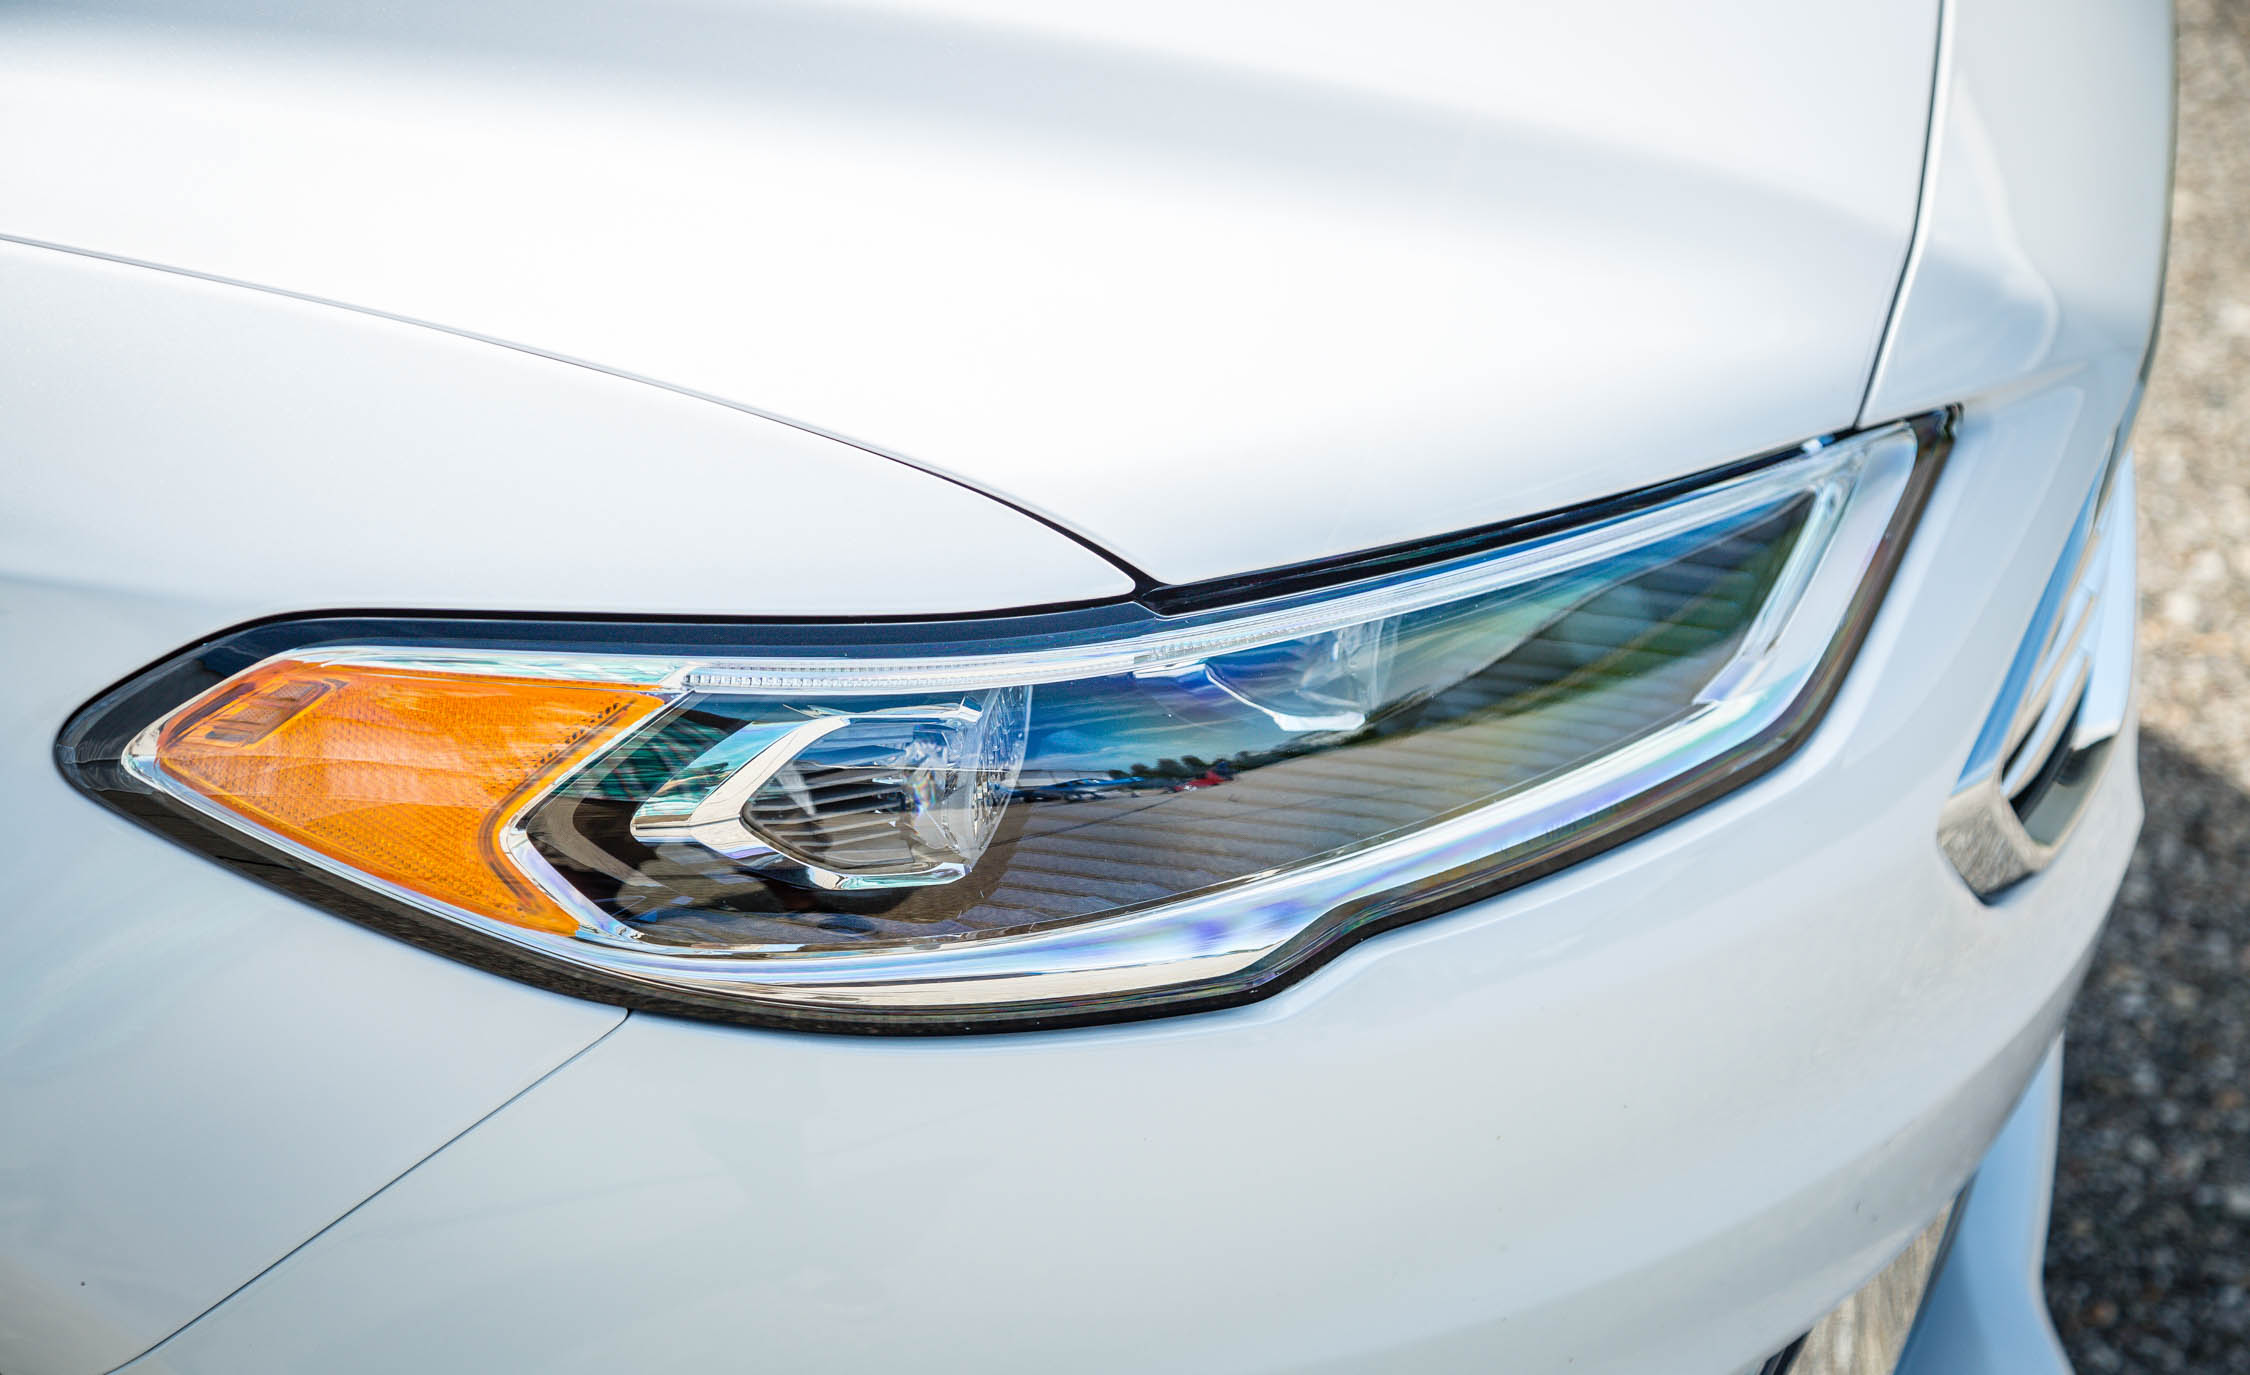 2017 Ford Fusion Energi Titanium Exterior View Headlight (Photo 12 of 19)